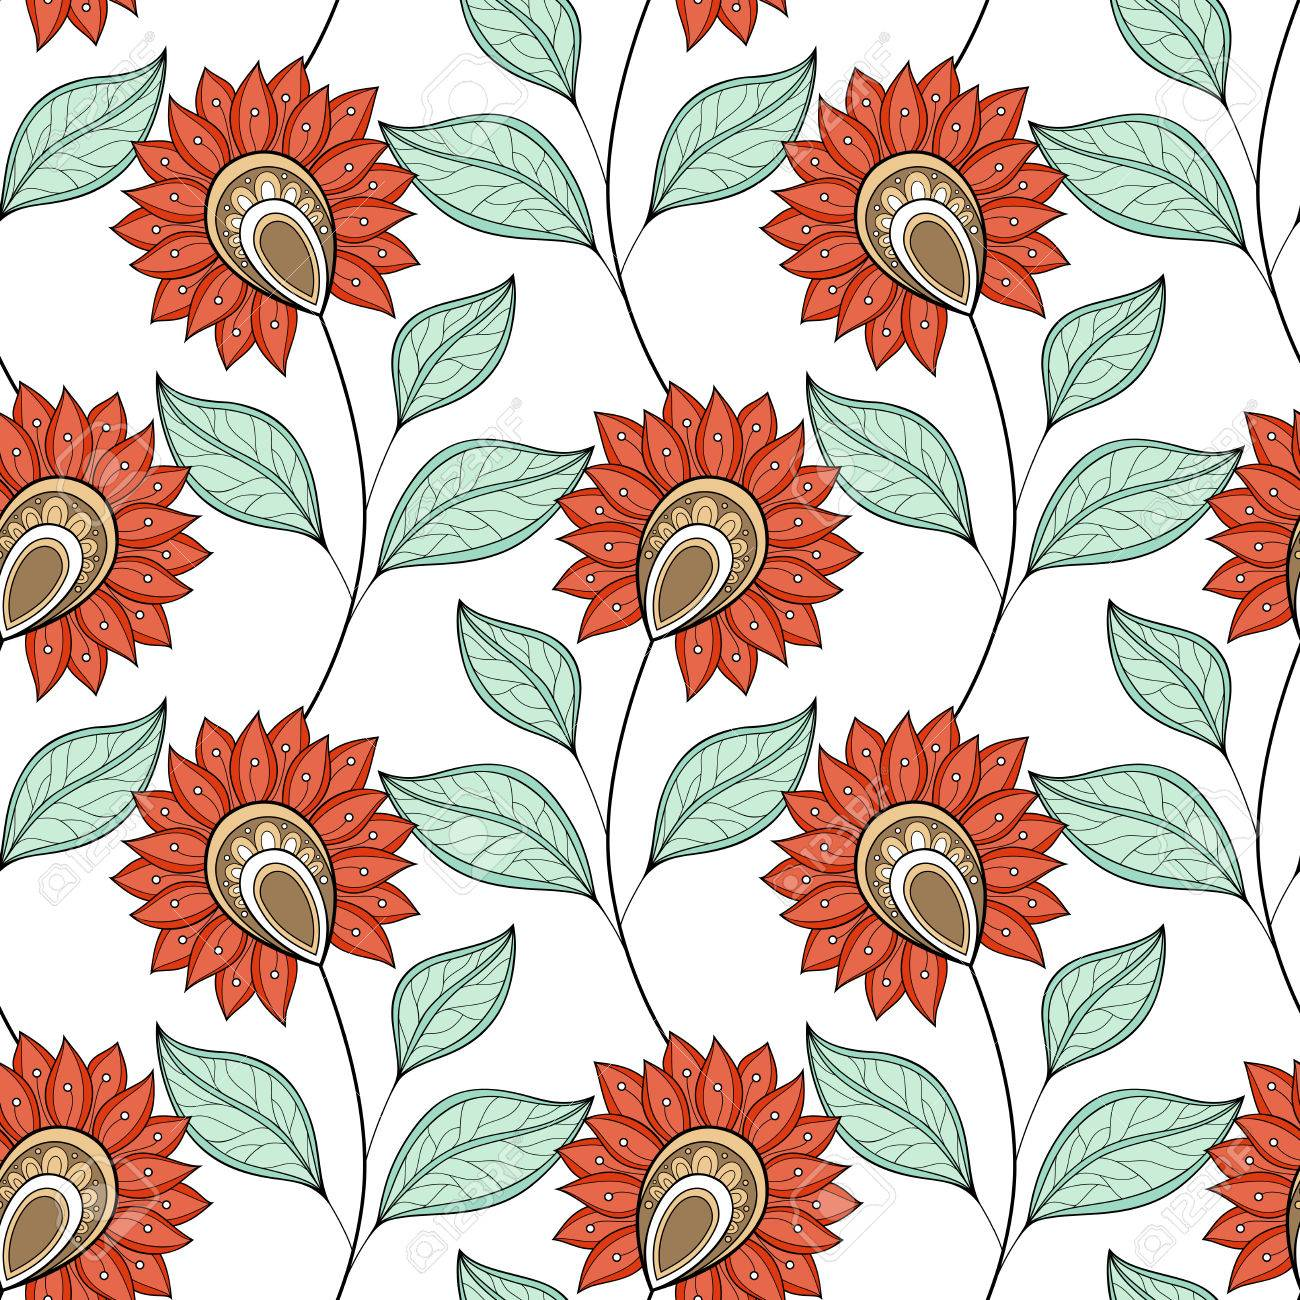 Seamless Floral Pattern. Hand Drawn Floral Texture, Decorative ...